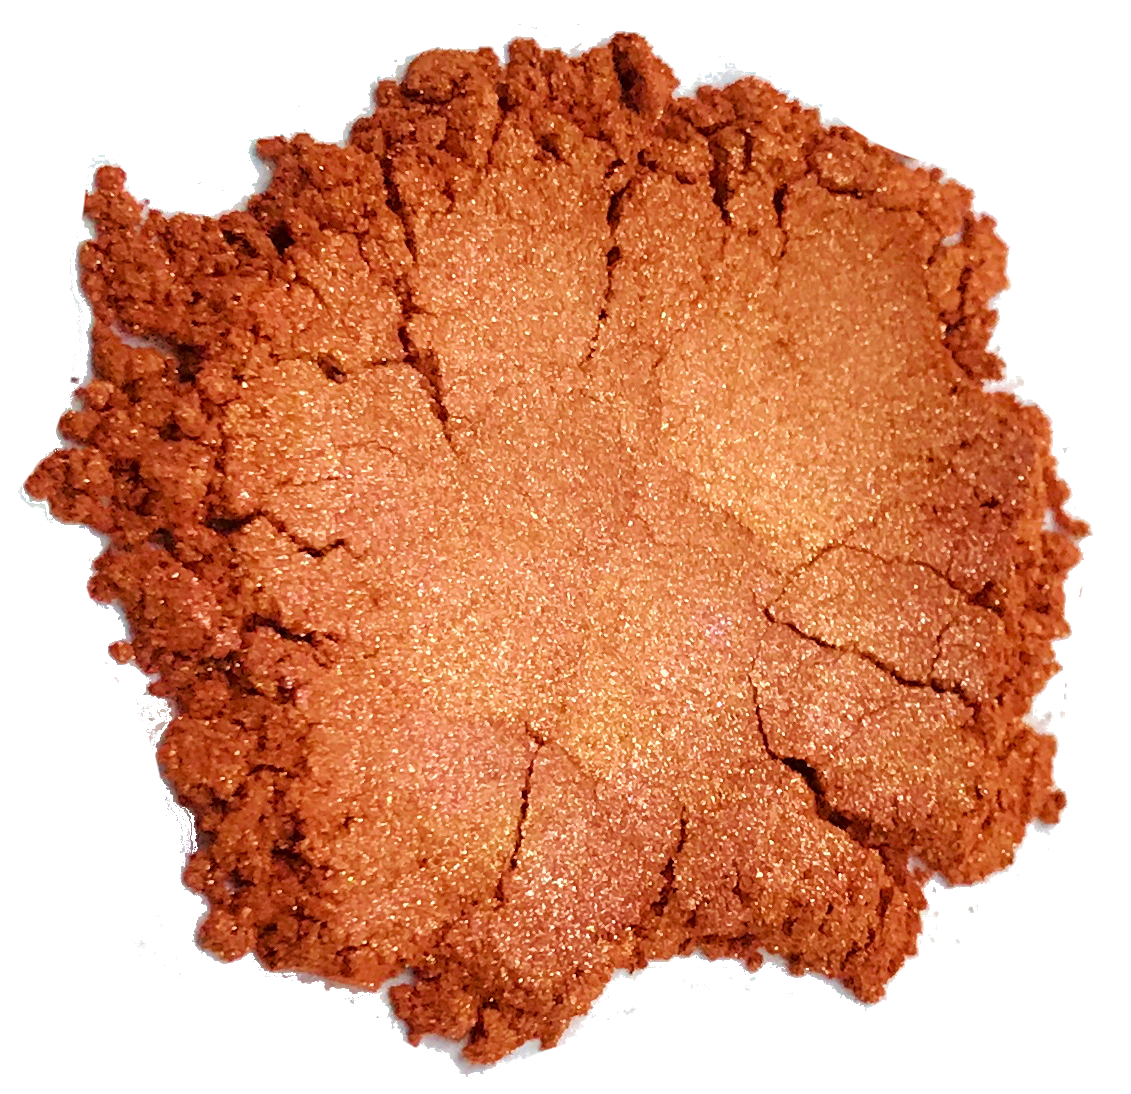 Packaged Versatile Powder Orange Crush #6